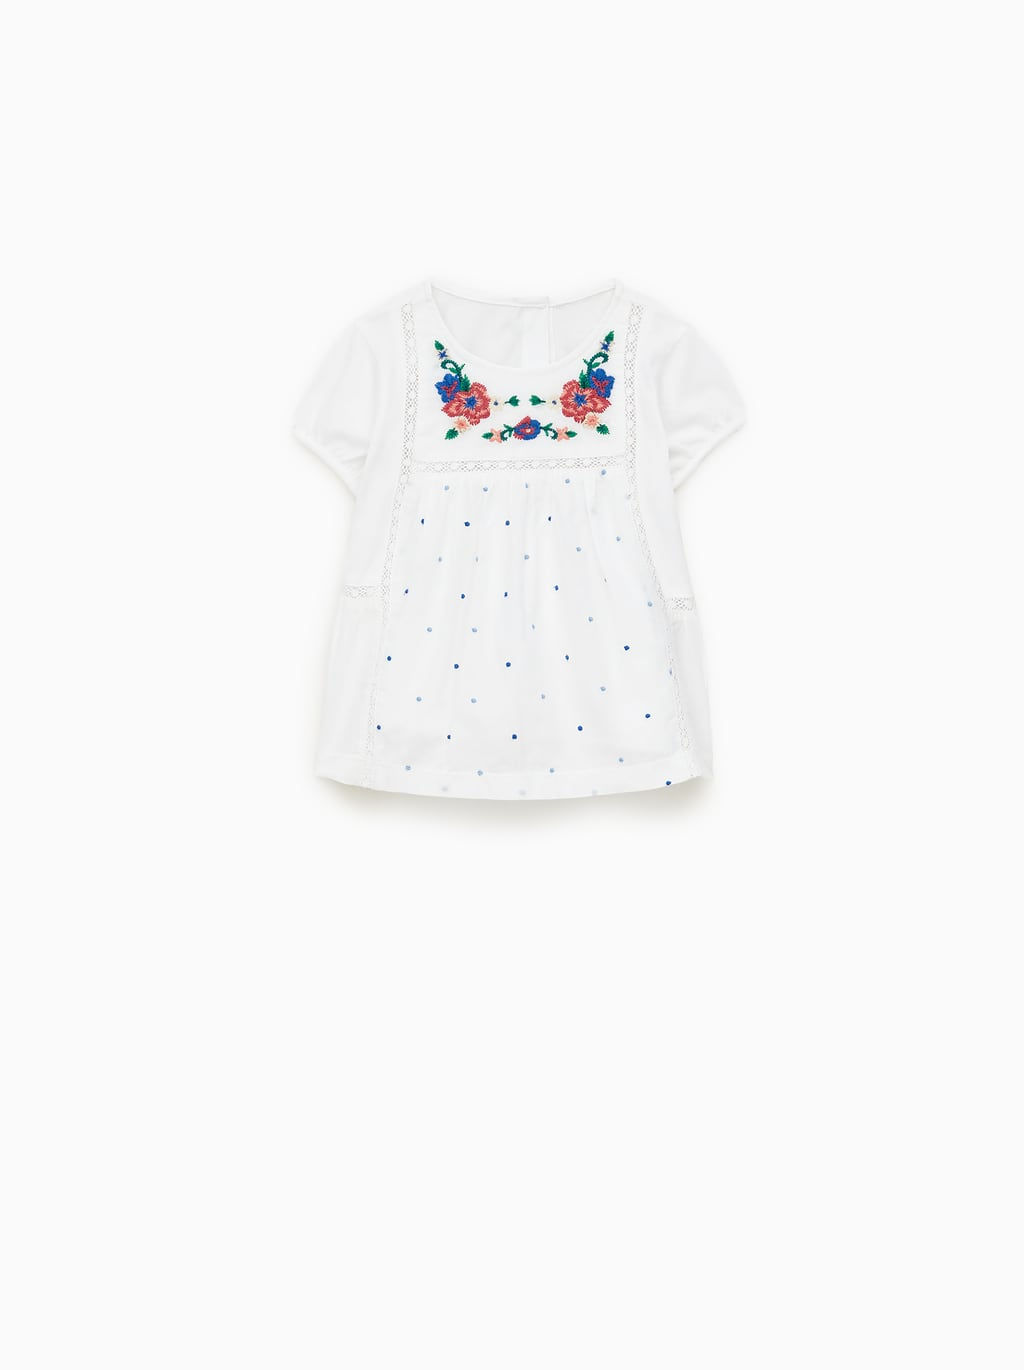 da89abdfaff EMBROIDERED T - SHIRT-EMBROIDERY-SHOP BY COLLECTION-BABY GIRL